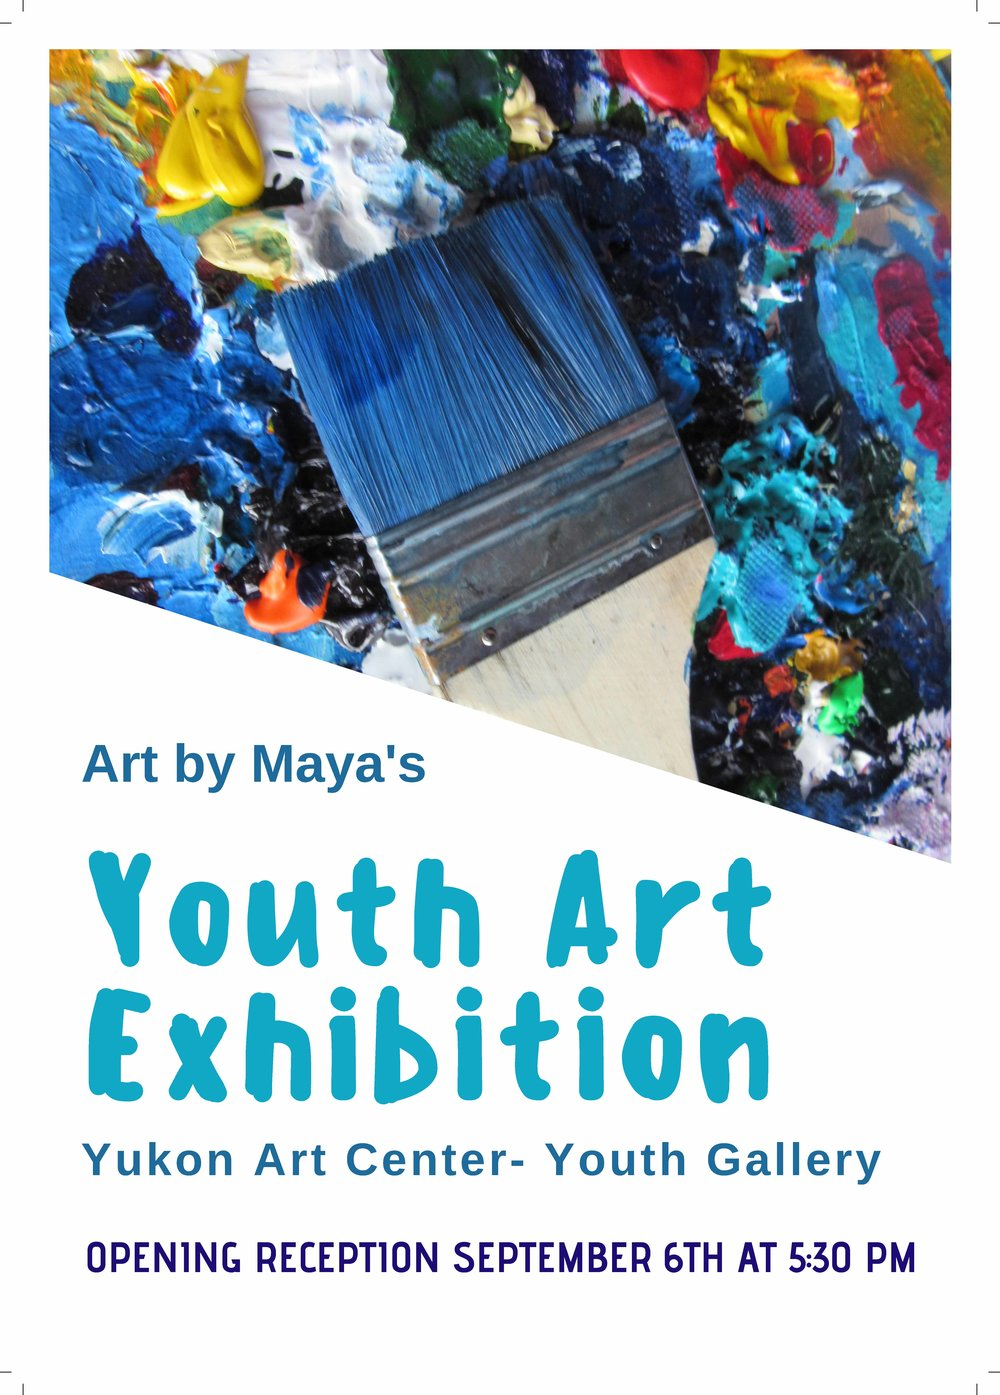 Yukon Art Center Poster_Web 2.jpg